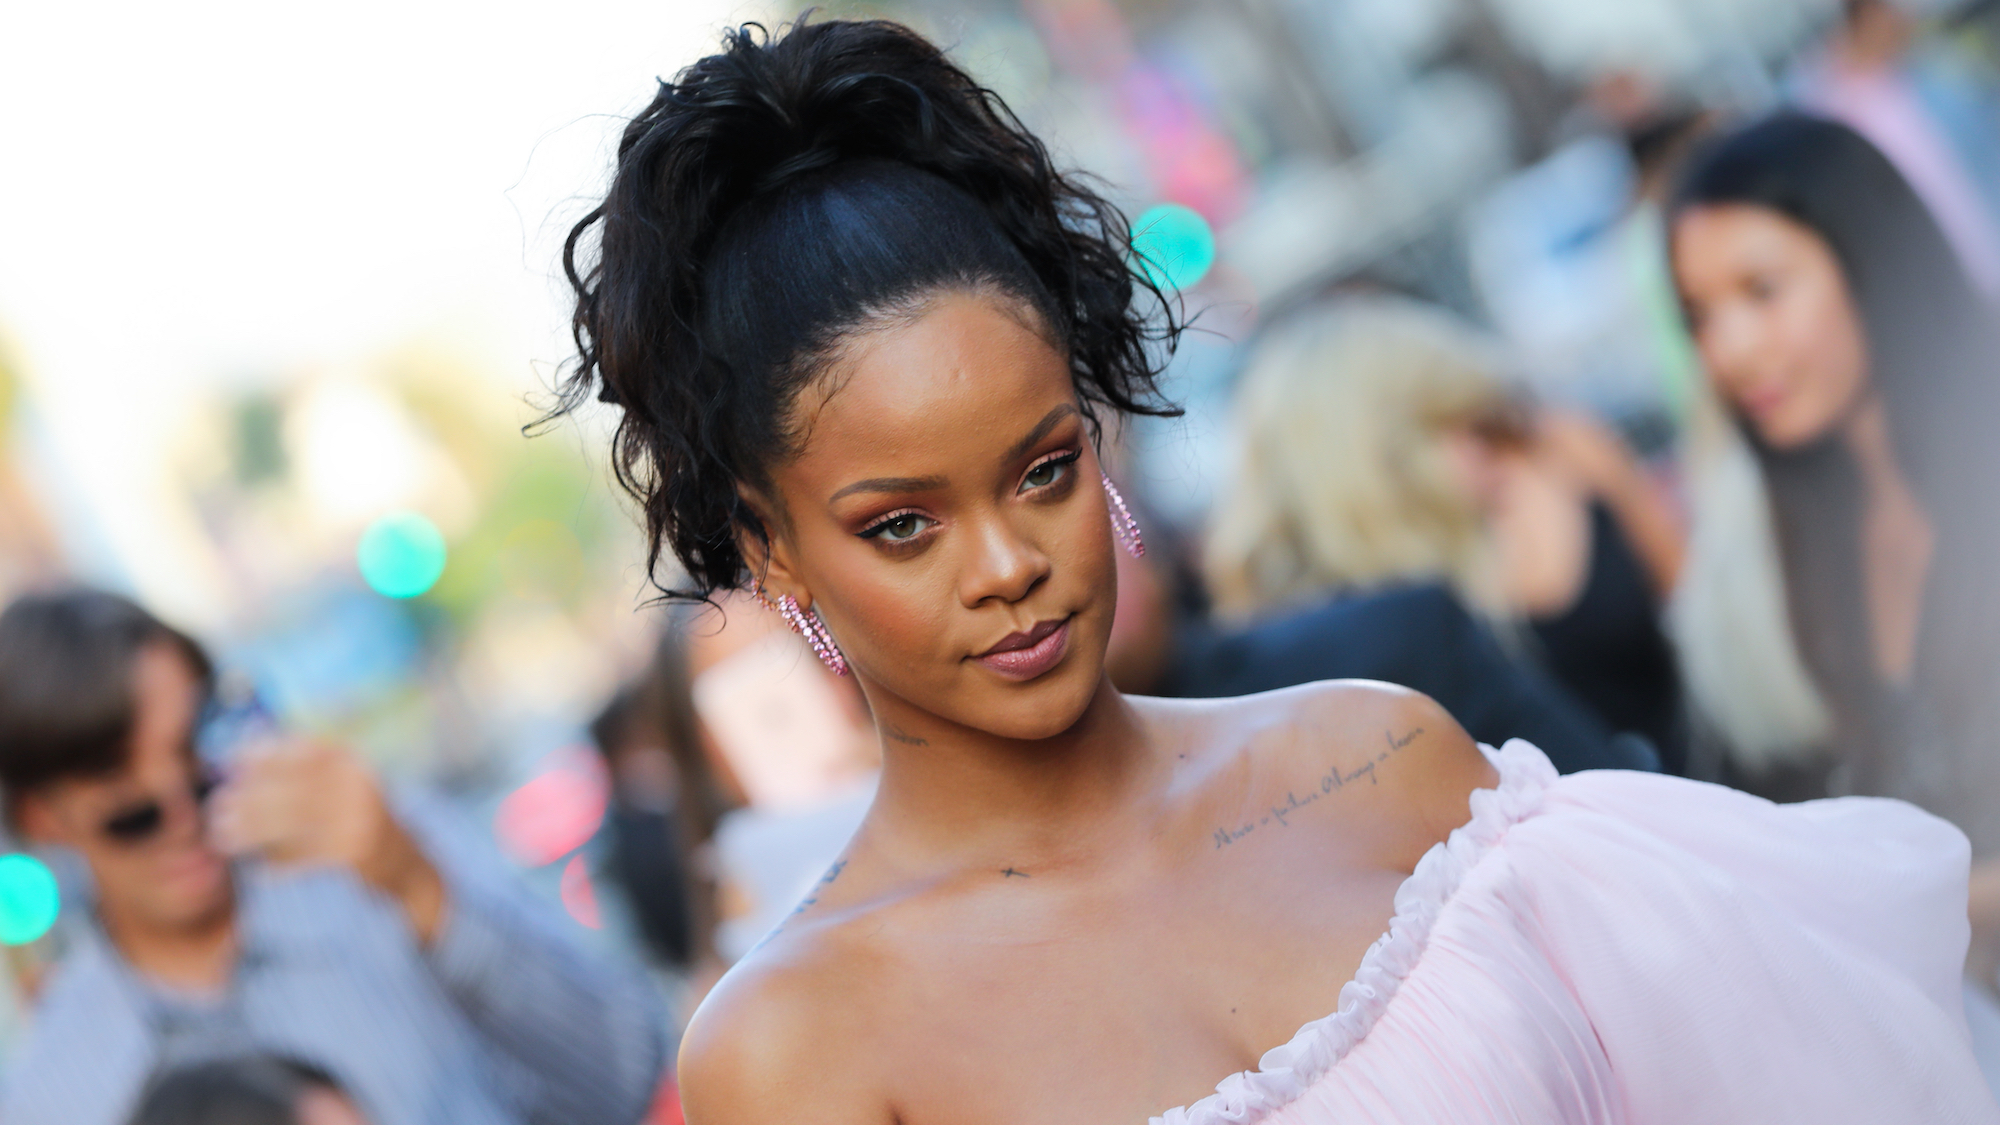 The Best Hairstyles For Oval Faces, According To Hair Experts For Short Hairstyles For Black Women With Oval Faces (View 16 of 25)